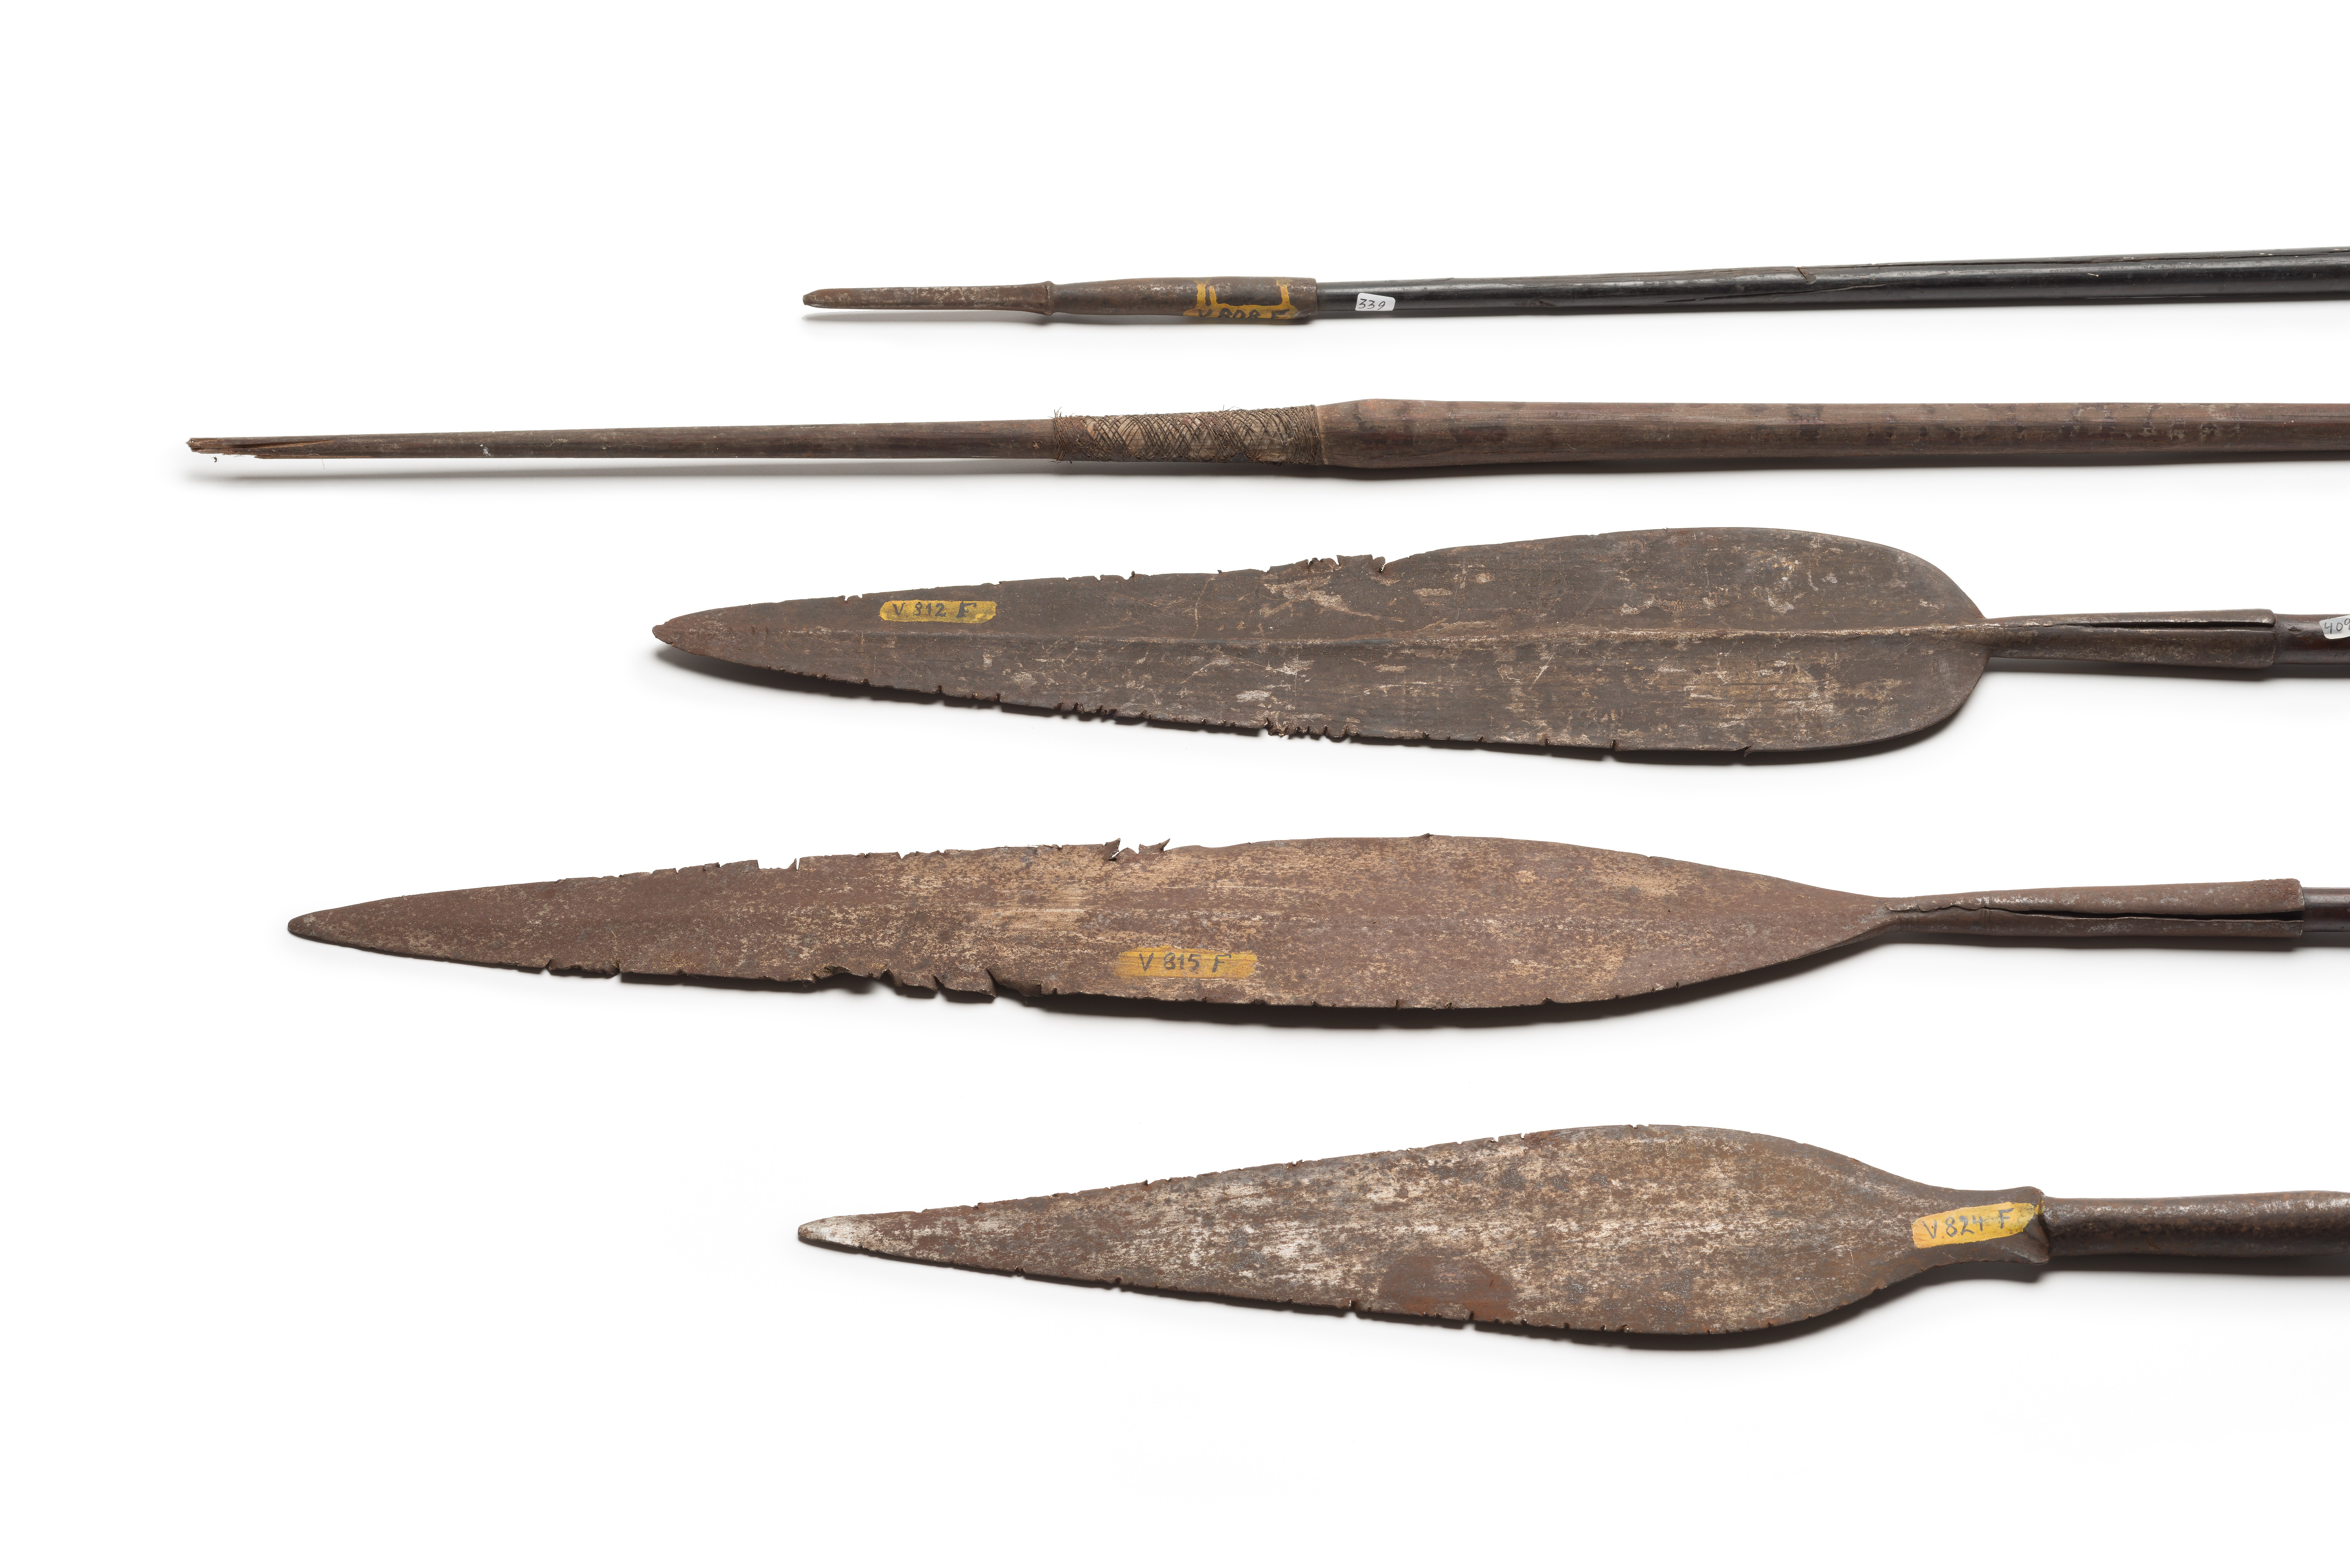 Arrows, lances and spears of mostly unexplained origin from the Hauser Collection (Museum Eberswalde, photo: Ronka Oberhammer / Lorenz Kienzle, CC BY-NC-SA)